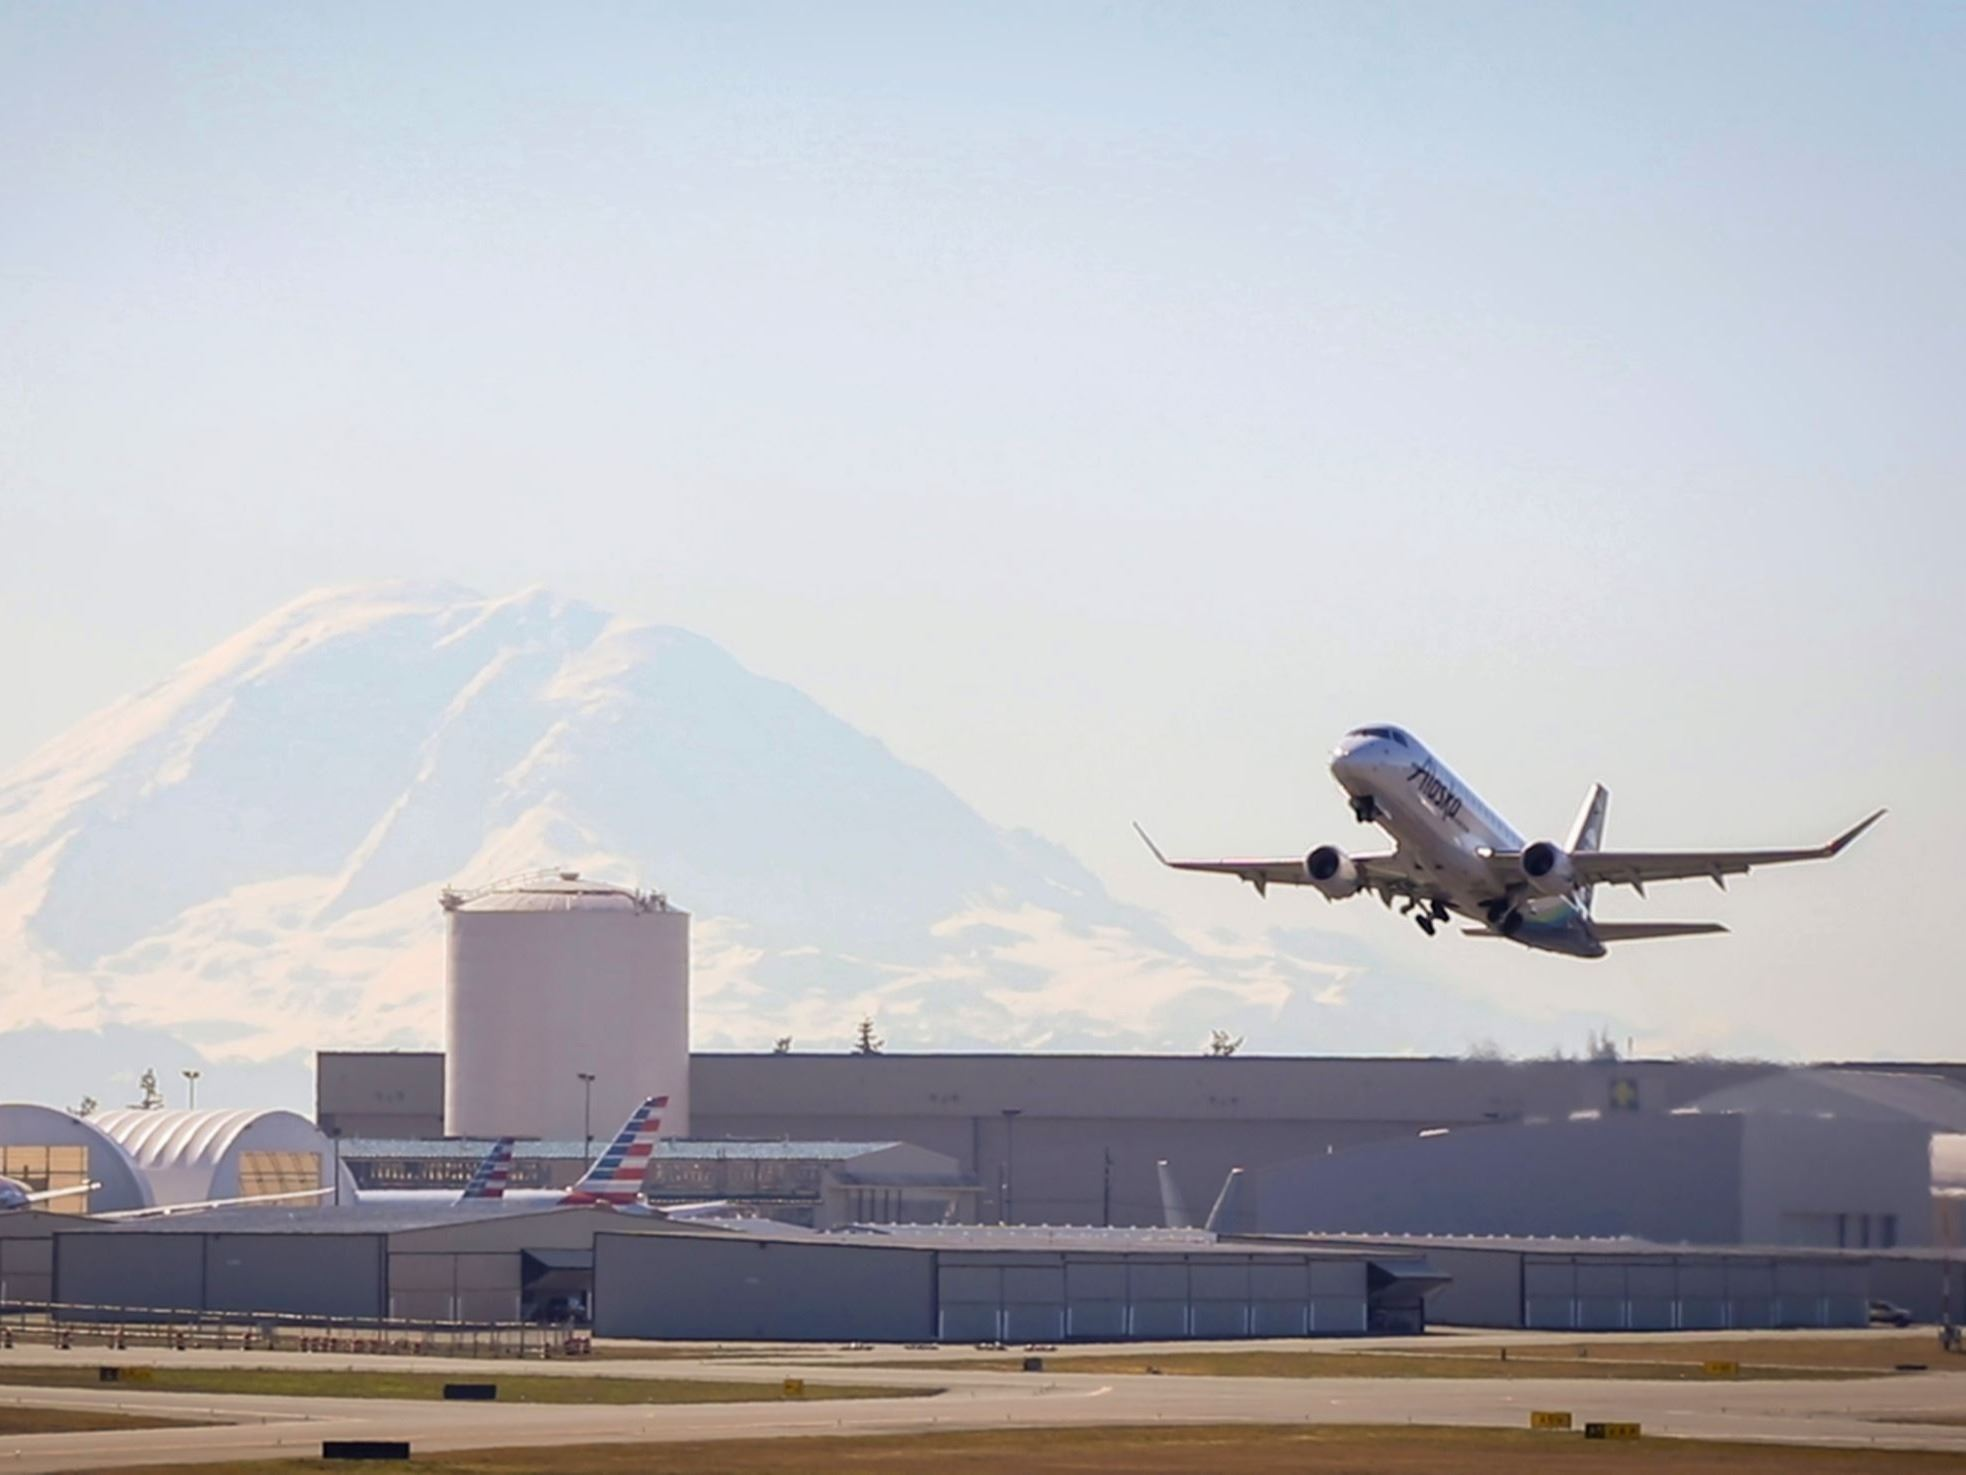 Plane taking off at Paine Field Everett